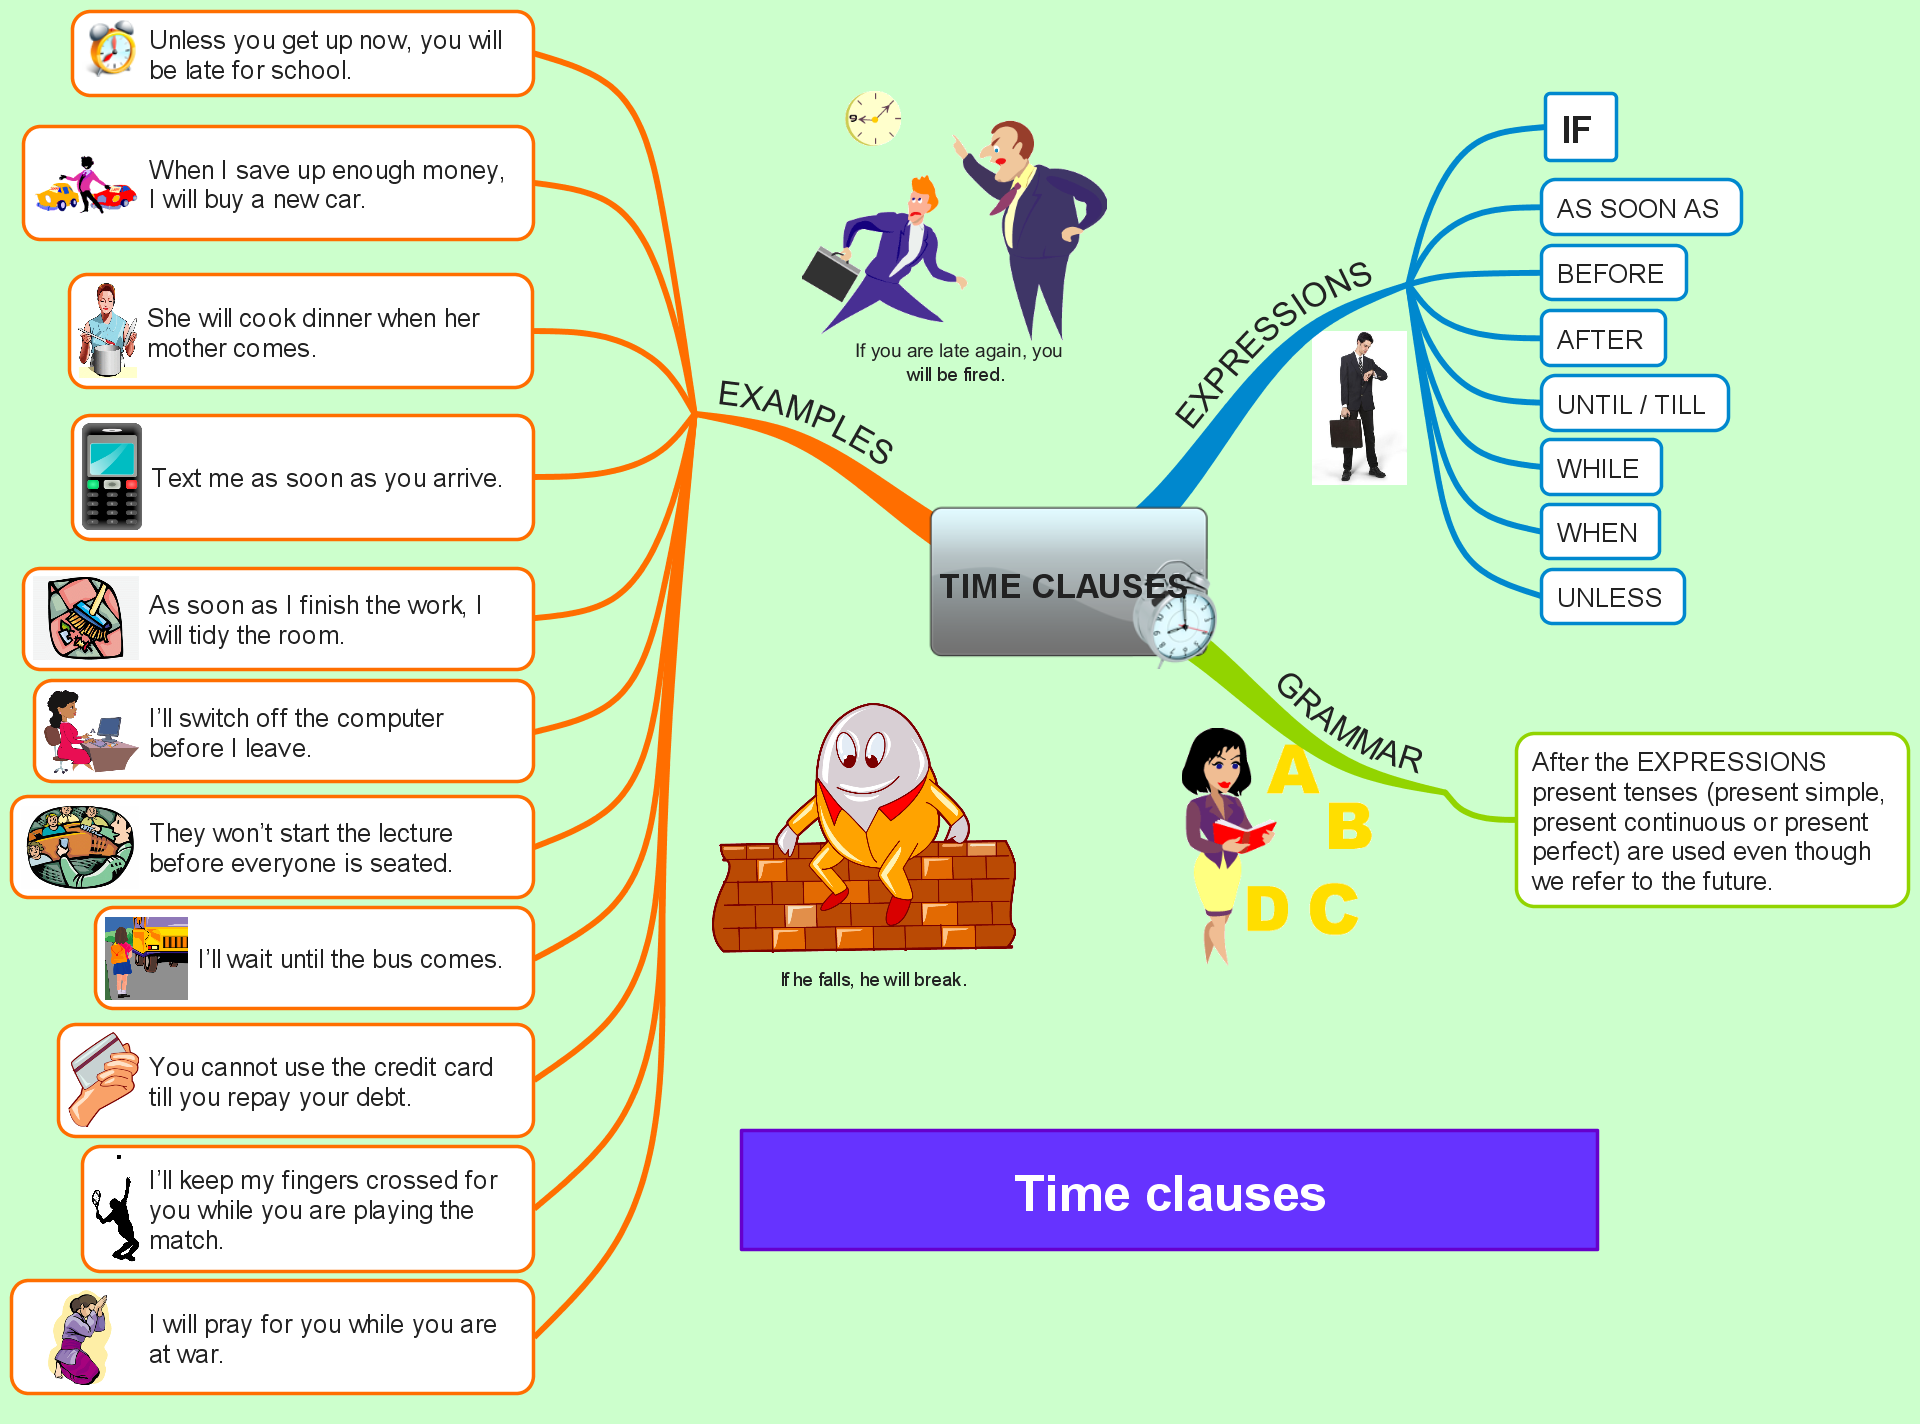 Time clauses Mind map final